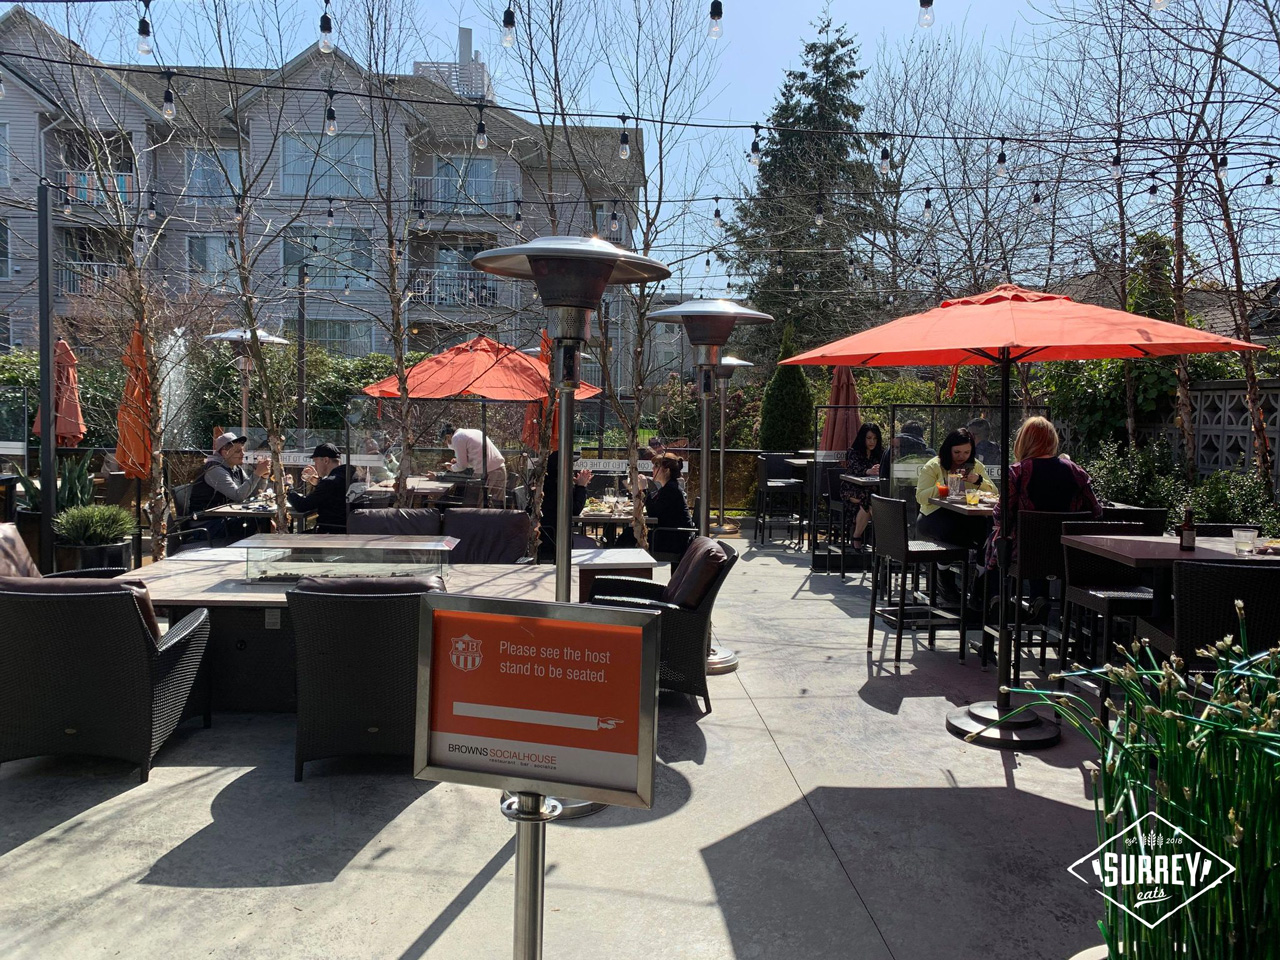 Browns Social House Guildford patio seating area